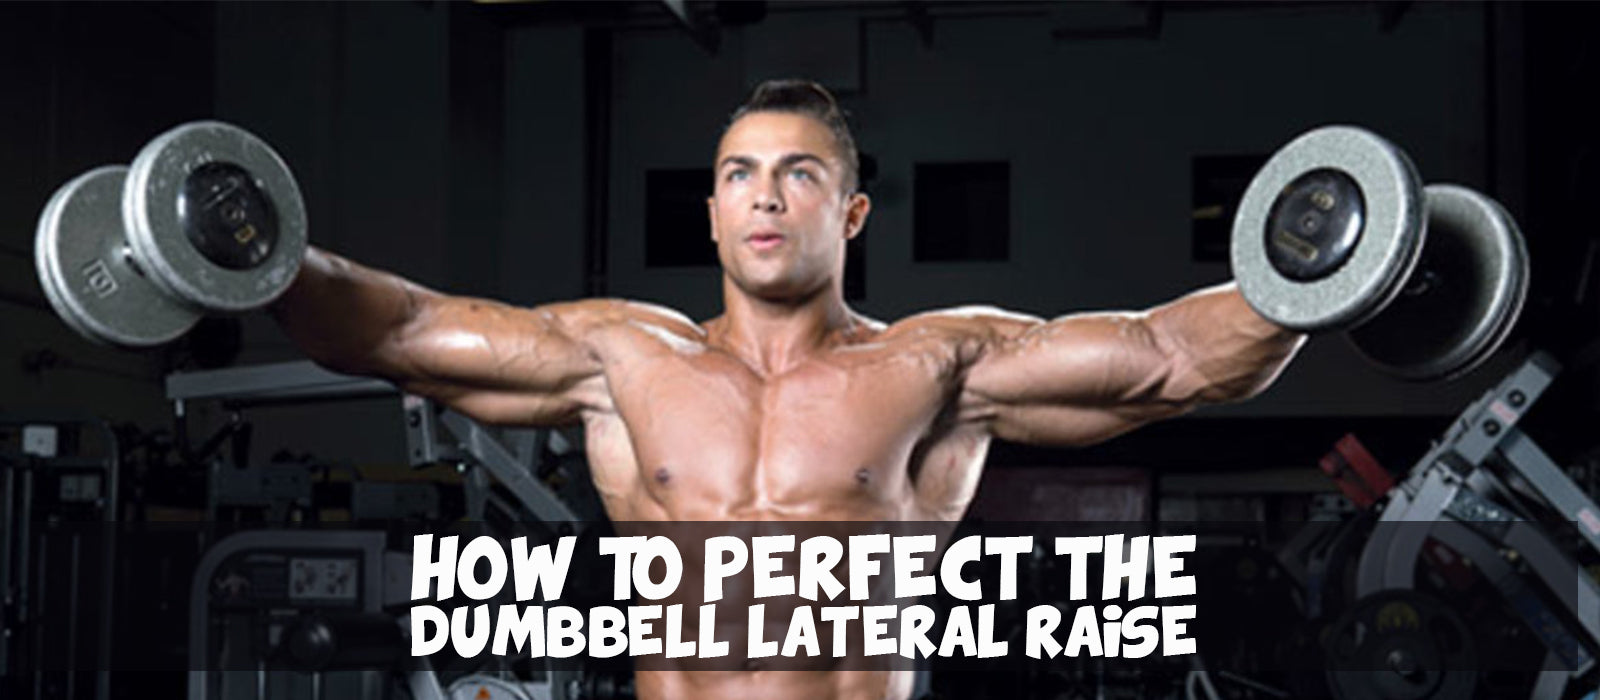 How To Perfect The Dumbbell Lateral Raise